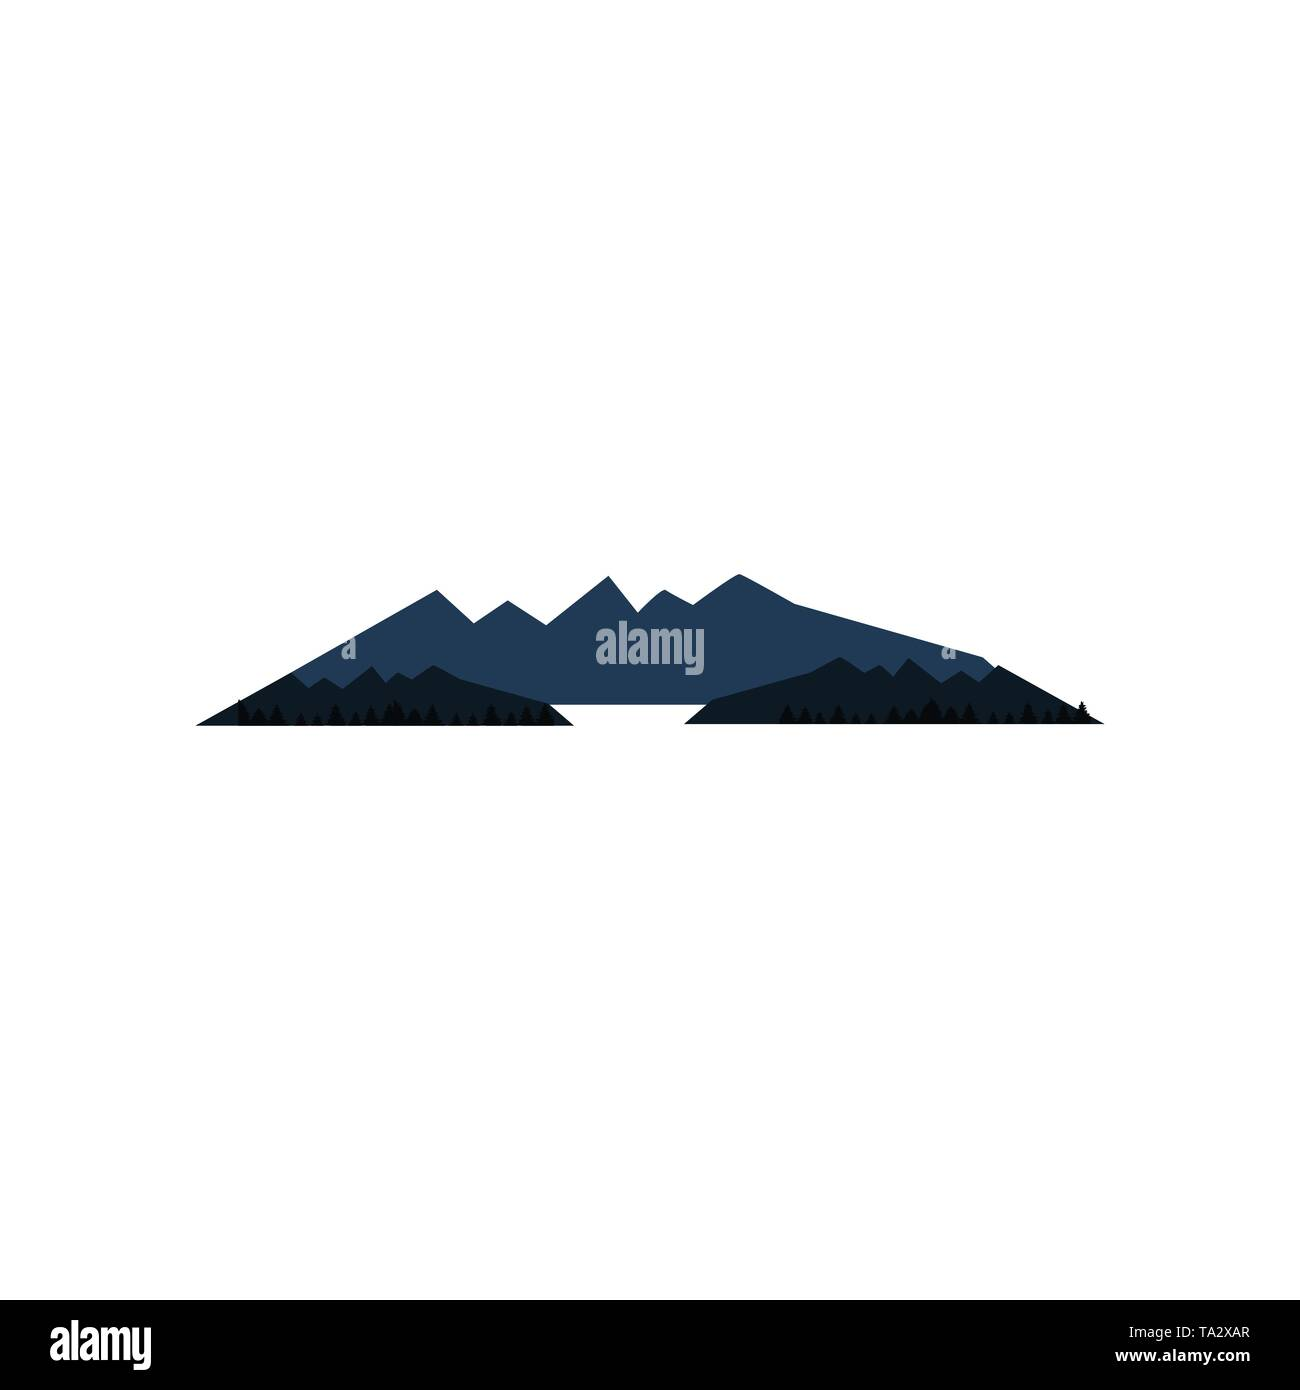 Flat Simple minimalist mountain landscape vector design illustration - Stock Vector